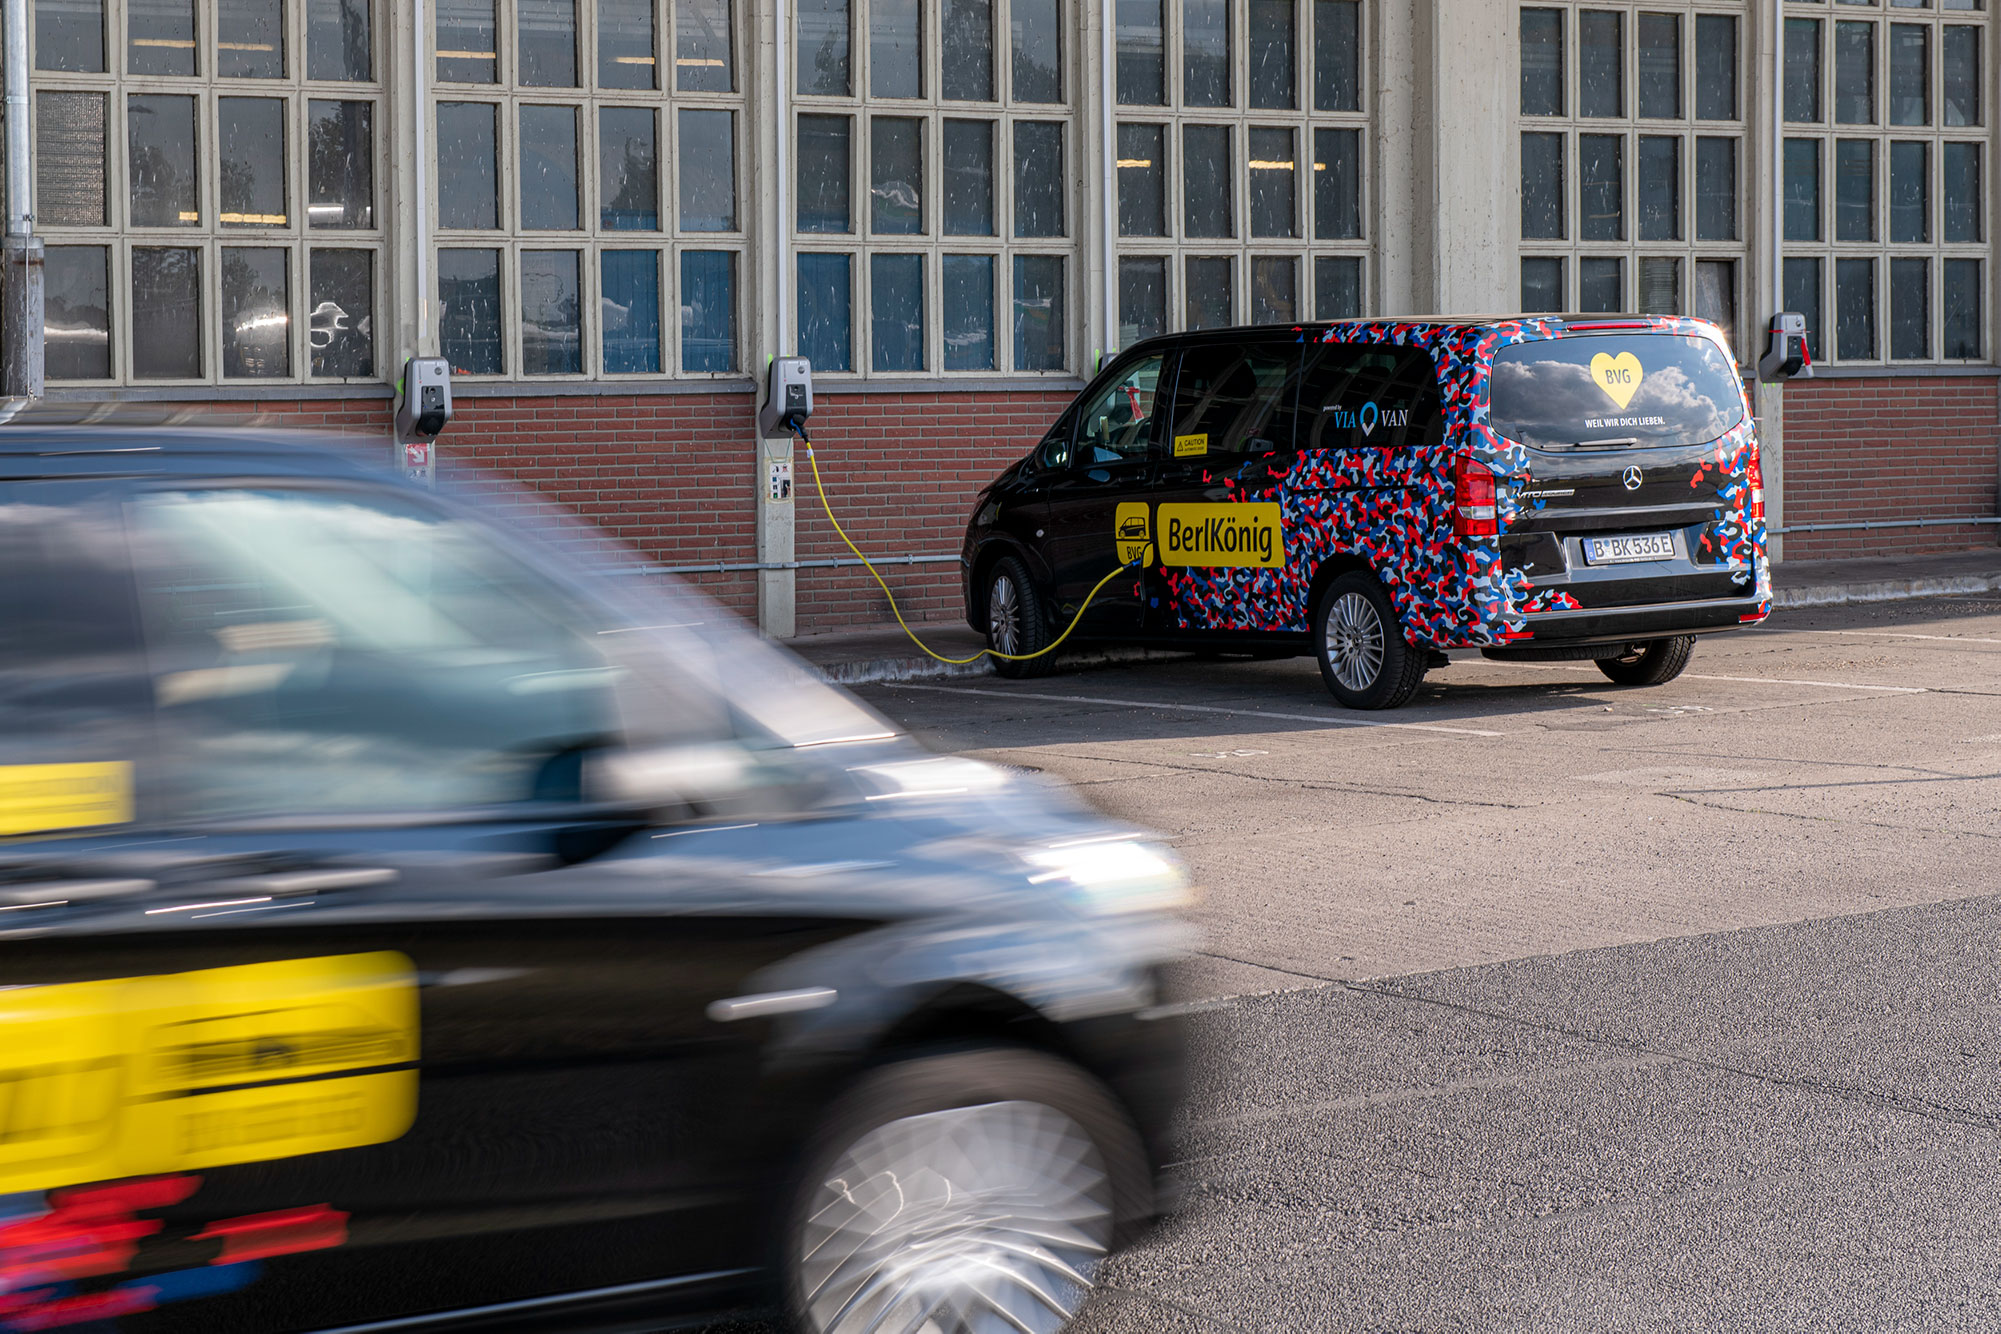 Since 2018, on-demand service BerlKönig has been driving on the streets of Berlin. An innovative mobility service to Berlin's public transport system run by local mobility provider BVG and Viavan, the joint venture of Via from the US and Daimler.